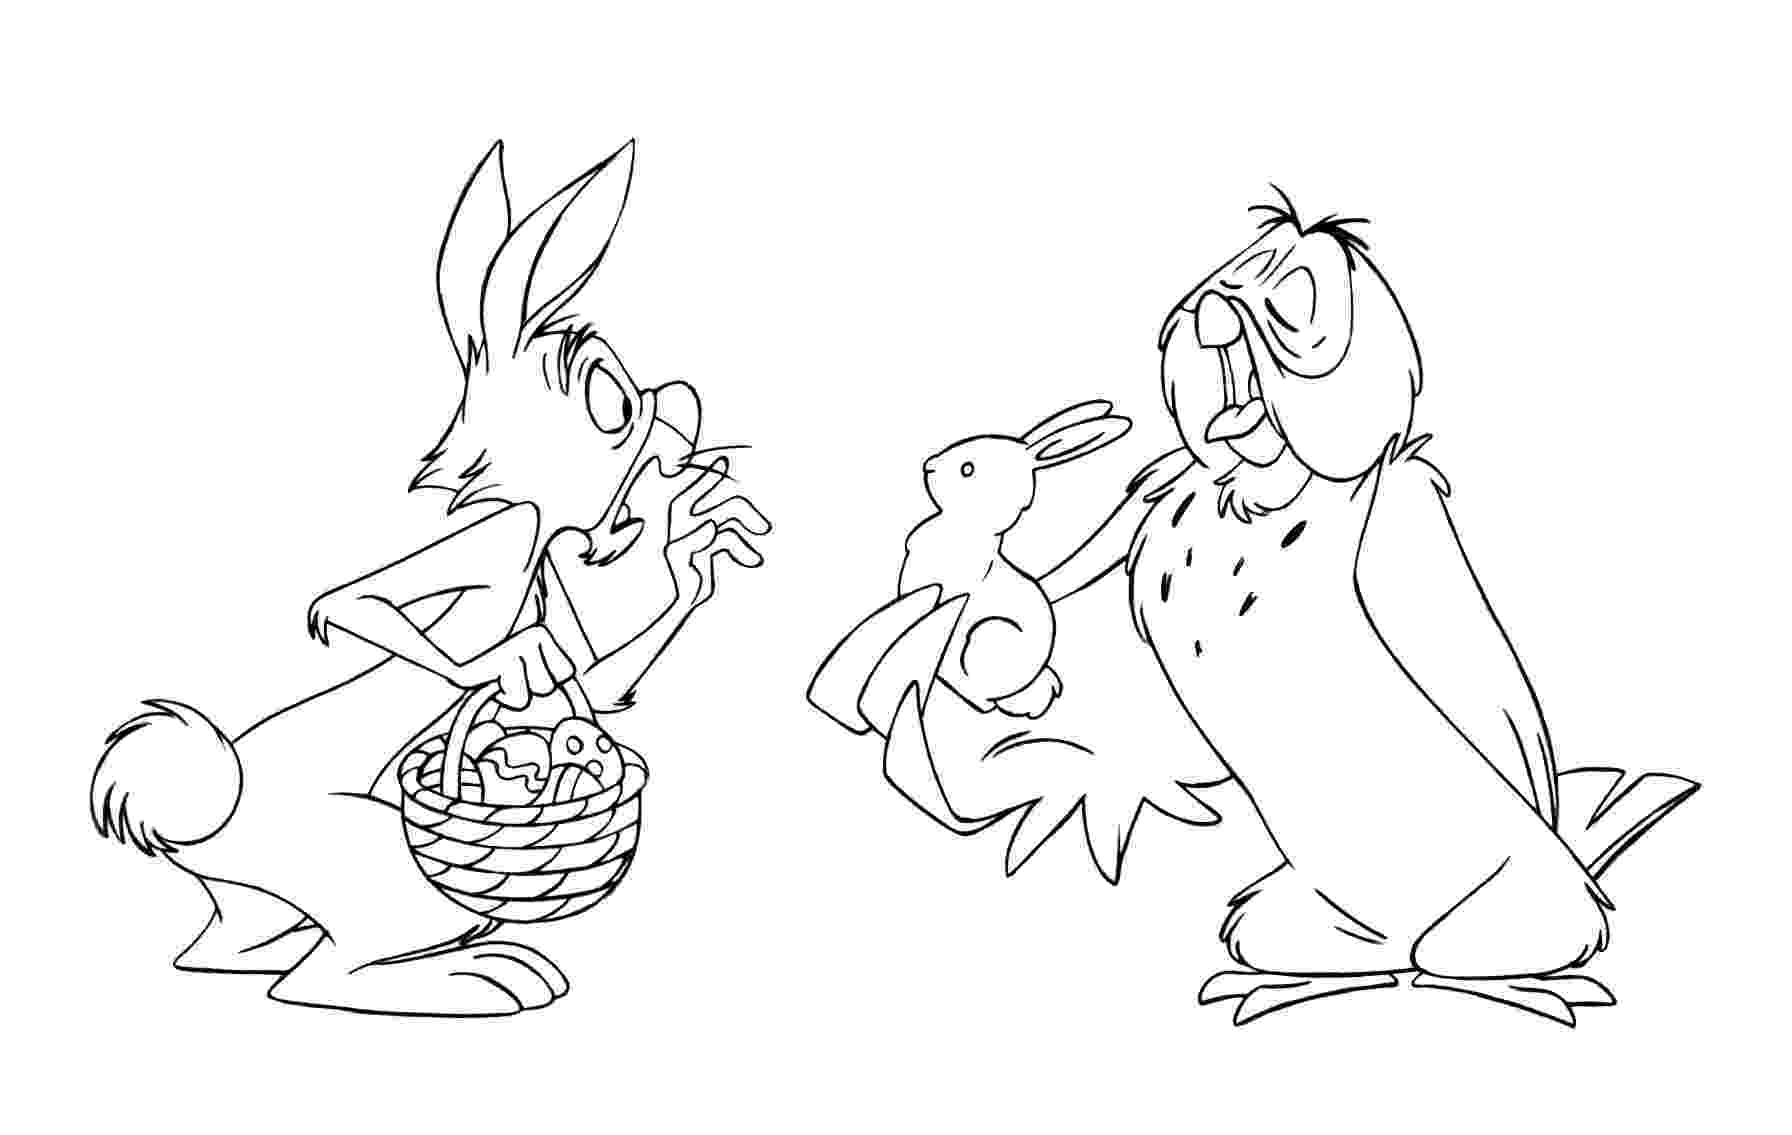 winnie the pooh easter coloring pages 17 best images about easter coloring pages on pinterest pooh easter winnie coloring the pages